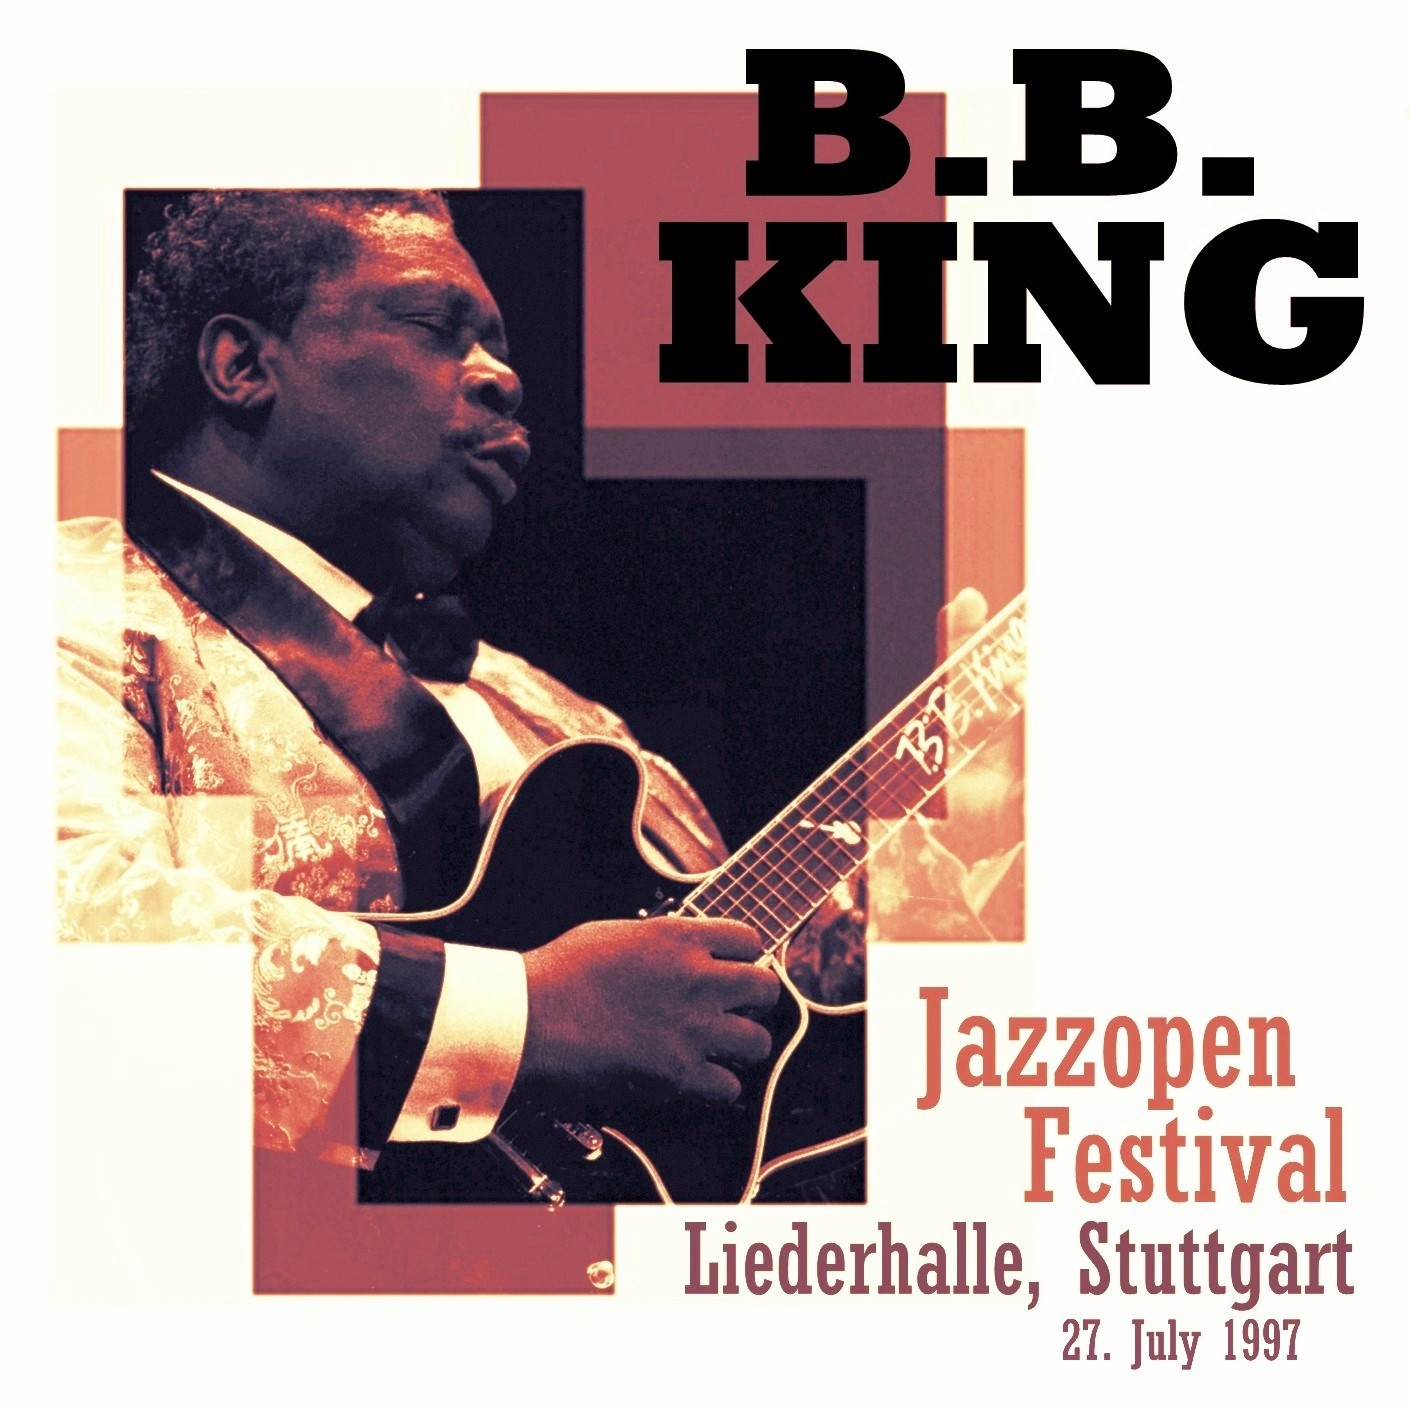 BBKing1997-07-22GermanTVBroadcast (2).jpg